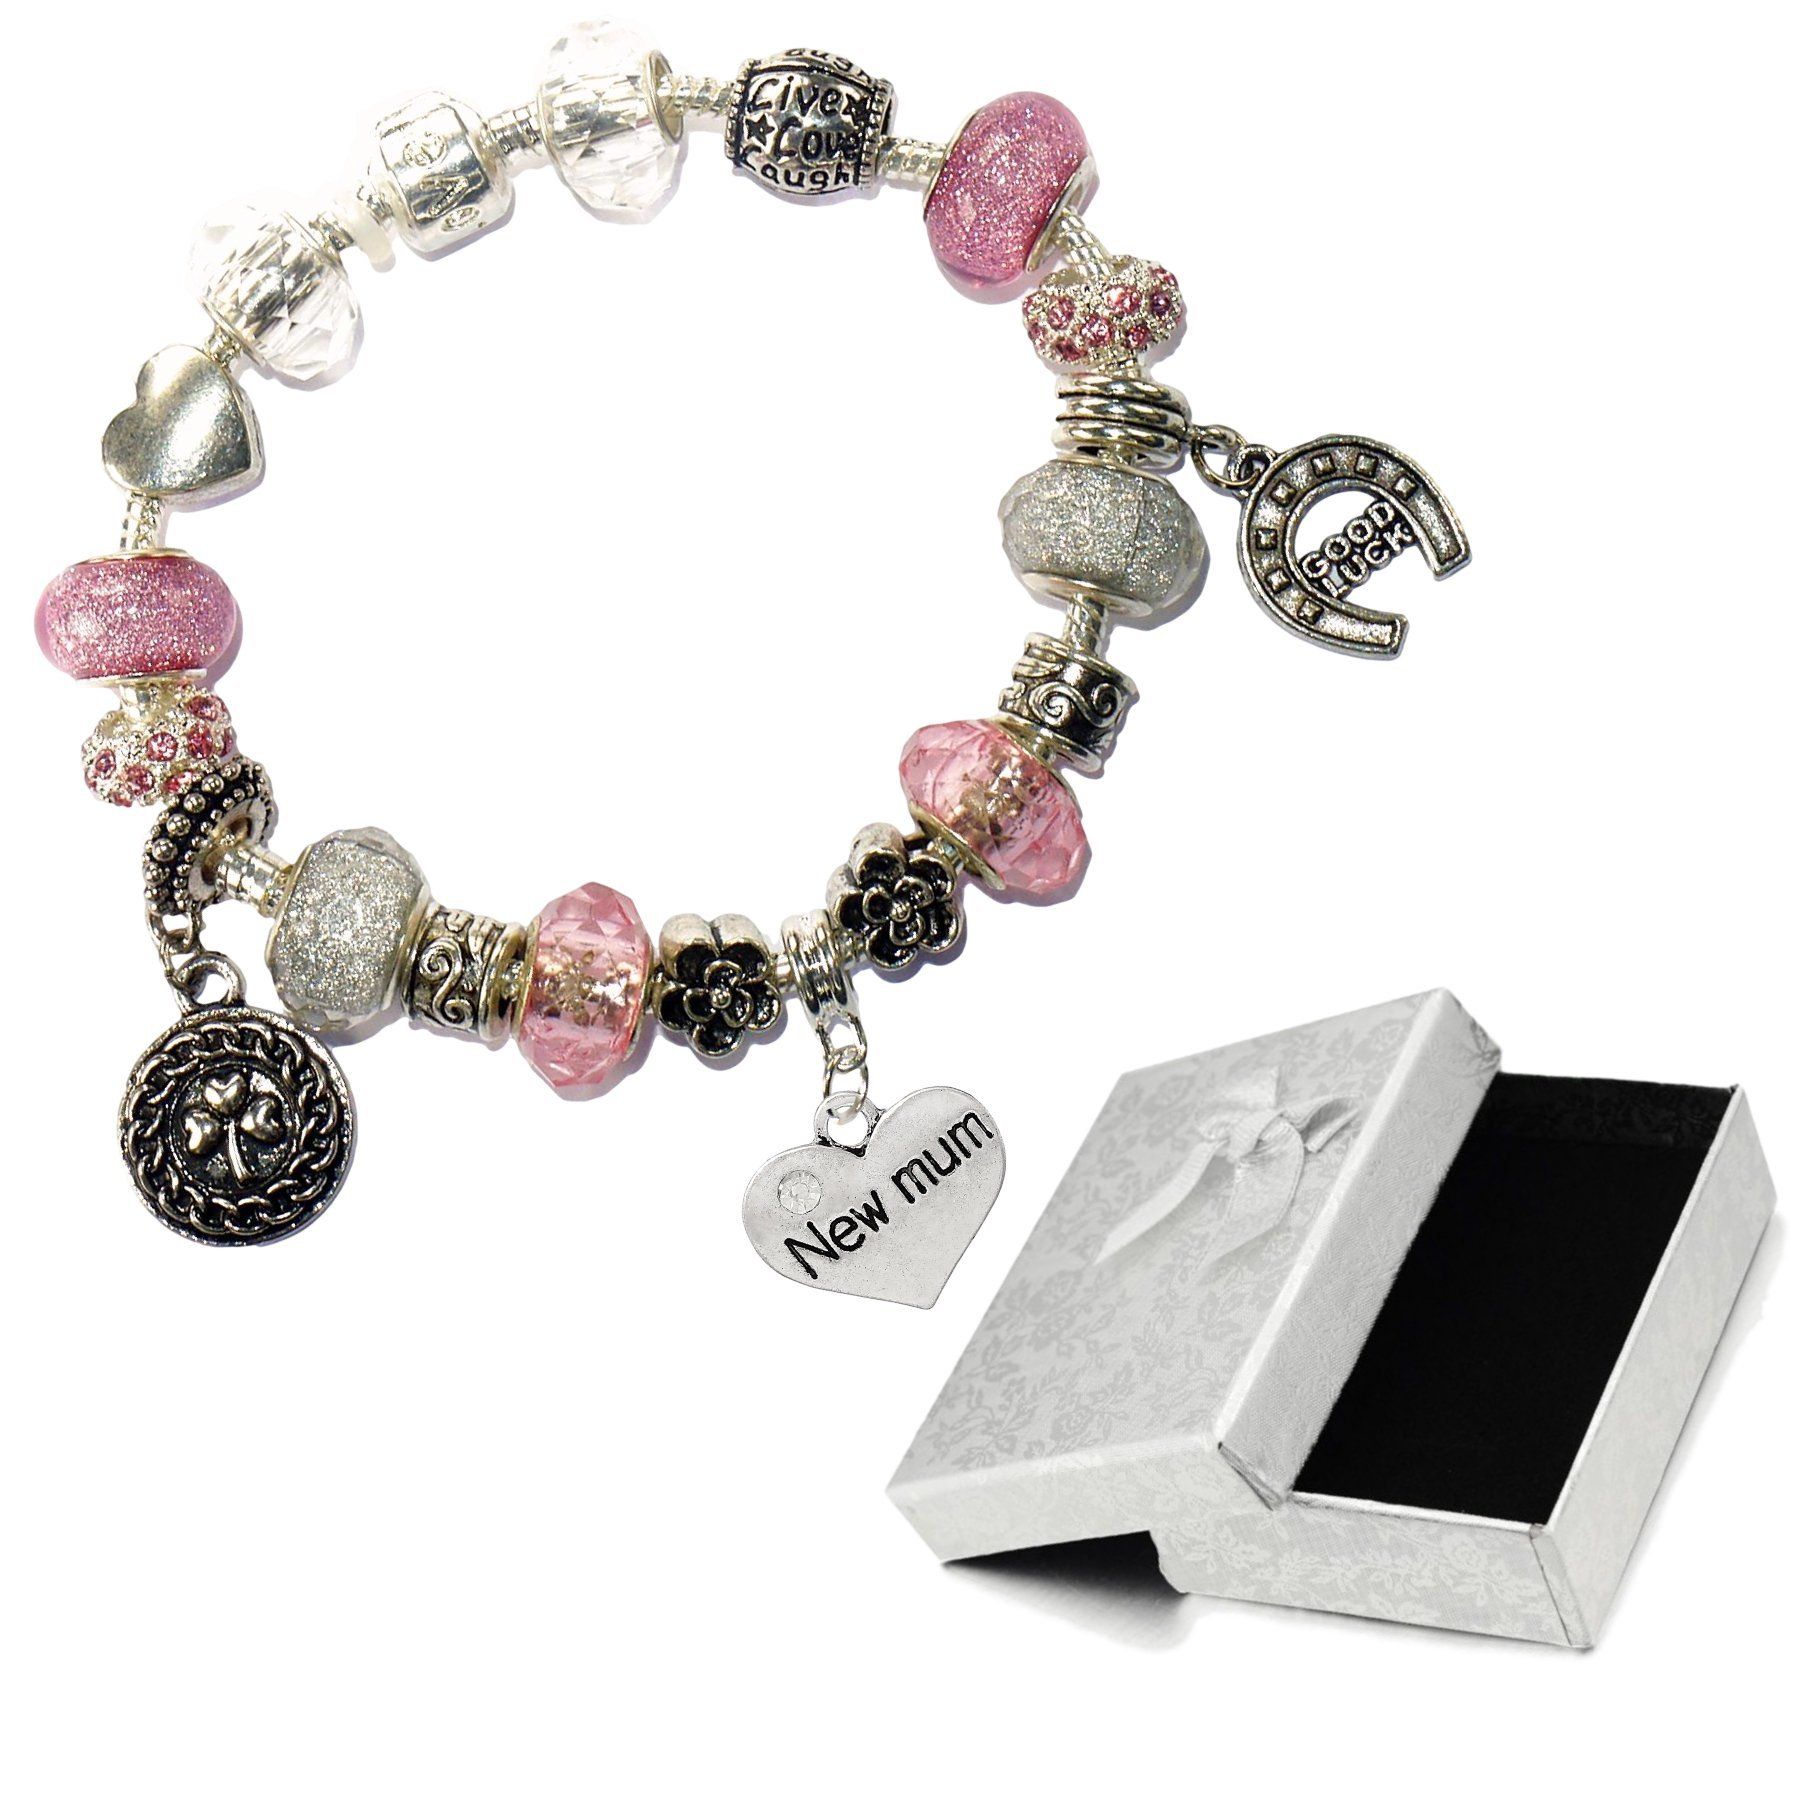 Charm Buddy New Mum Pink Silver Crystal Good Luck Pandora Style Bracelet With Charms Gift Box